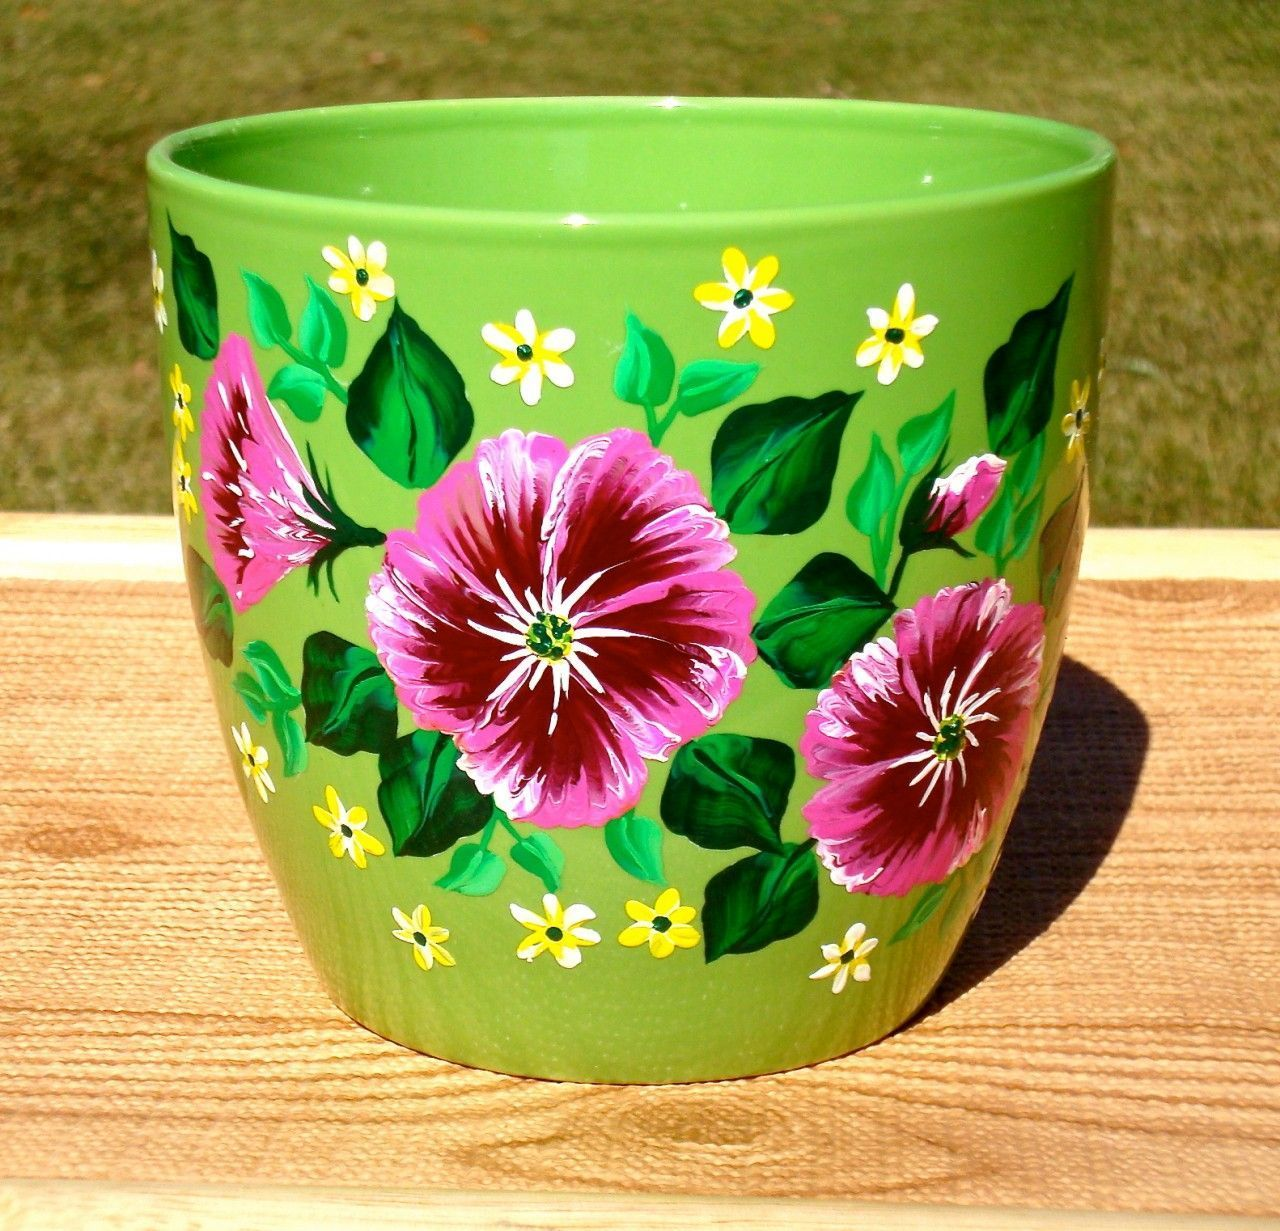 Green Flower Pot With Bright Flowers By Paint It Pretty